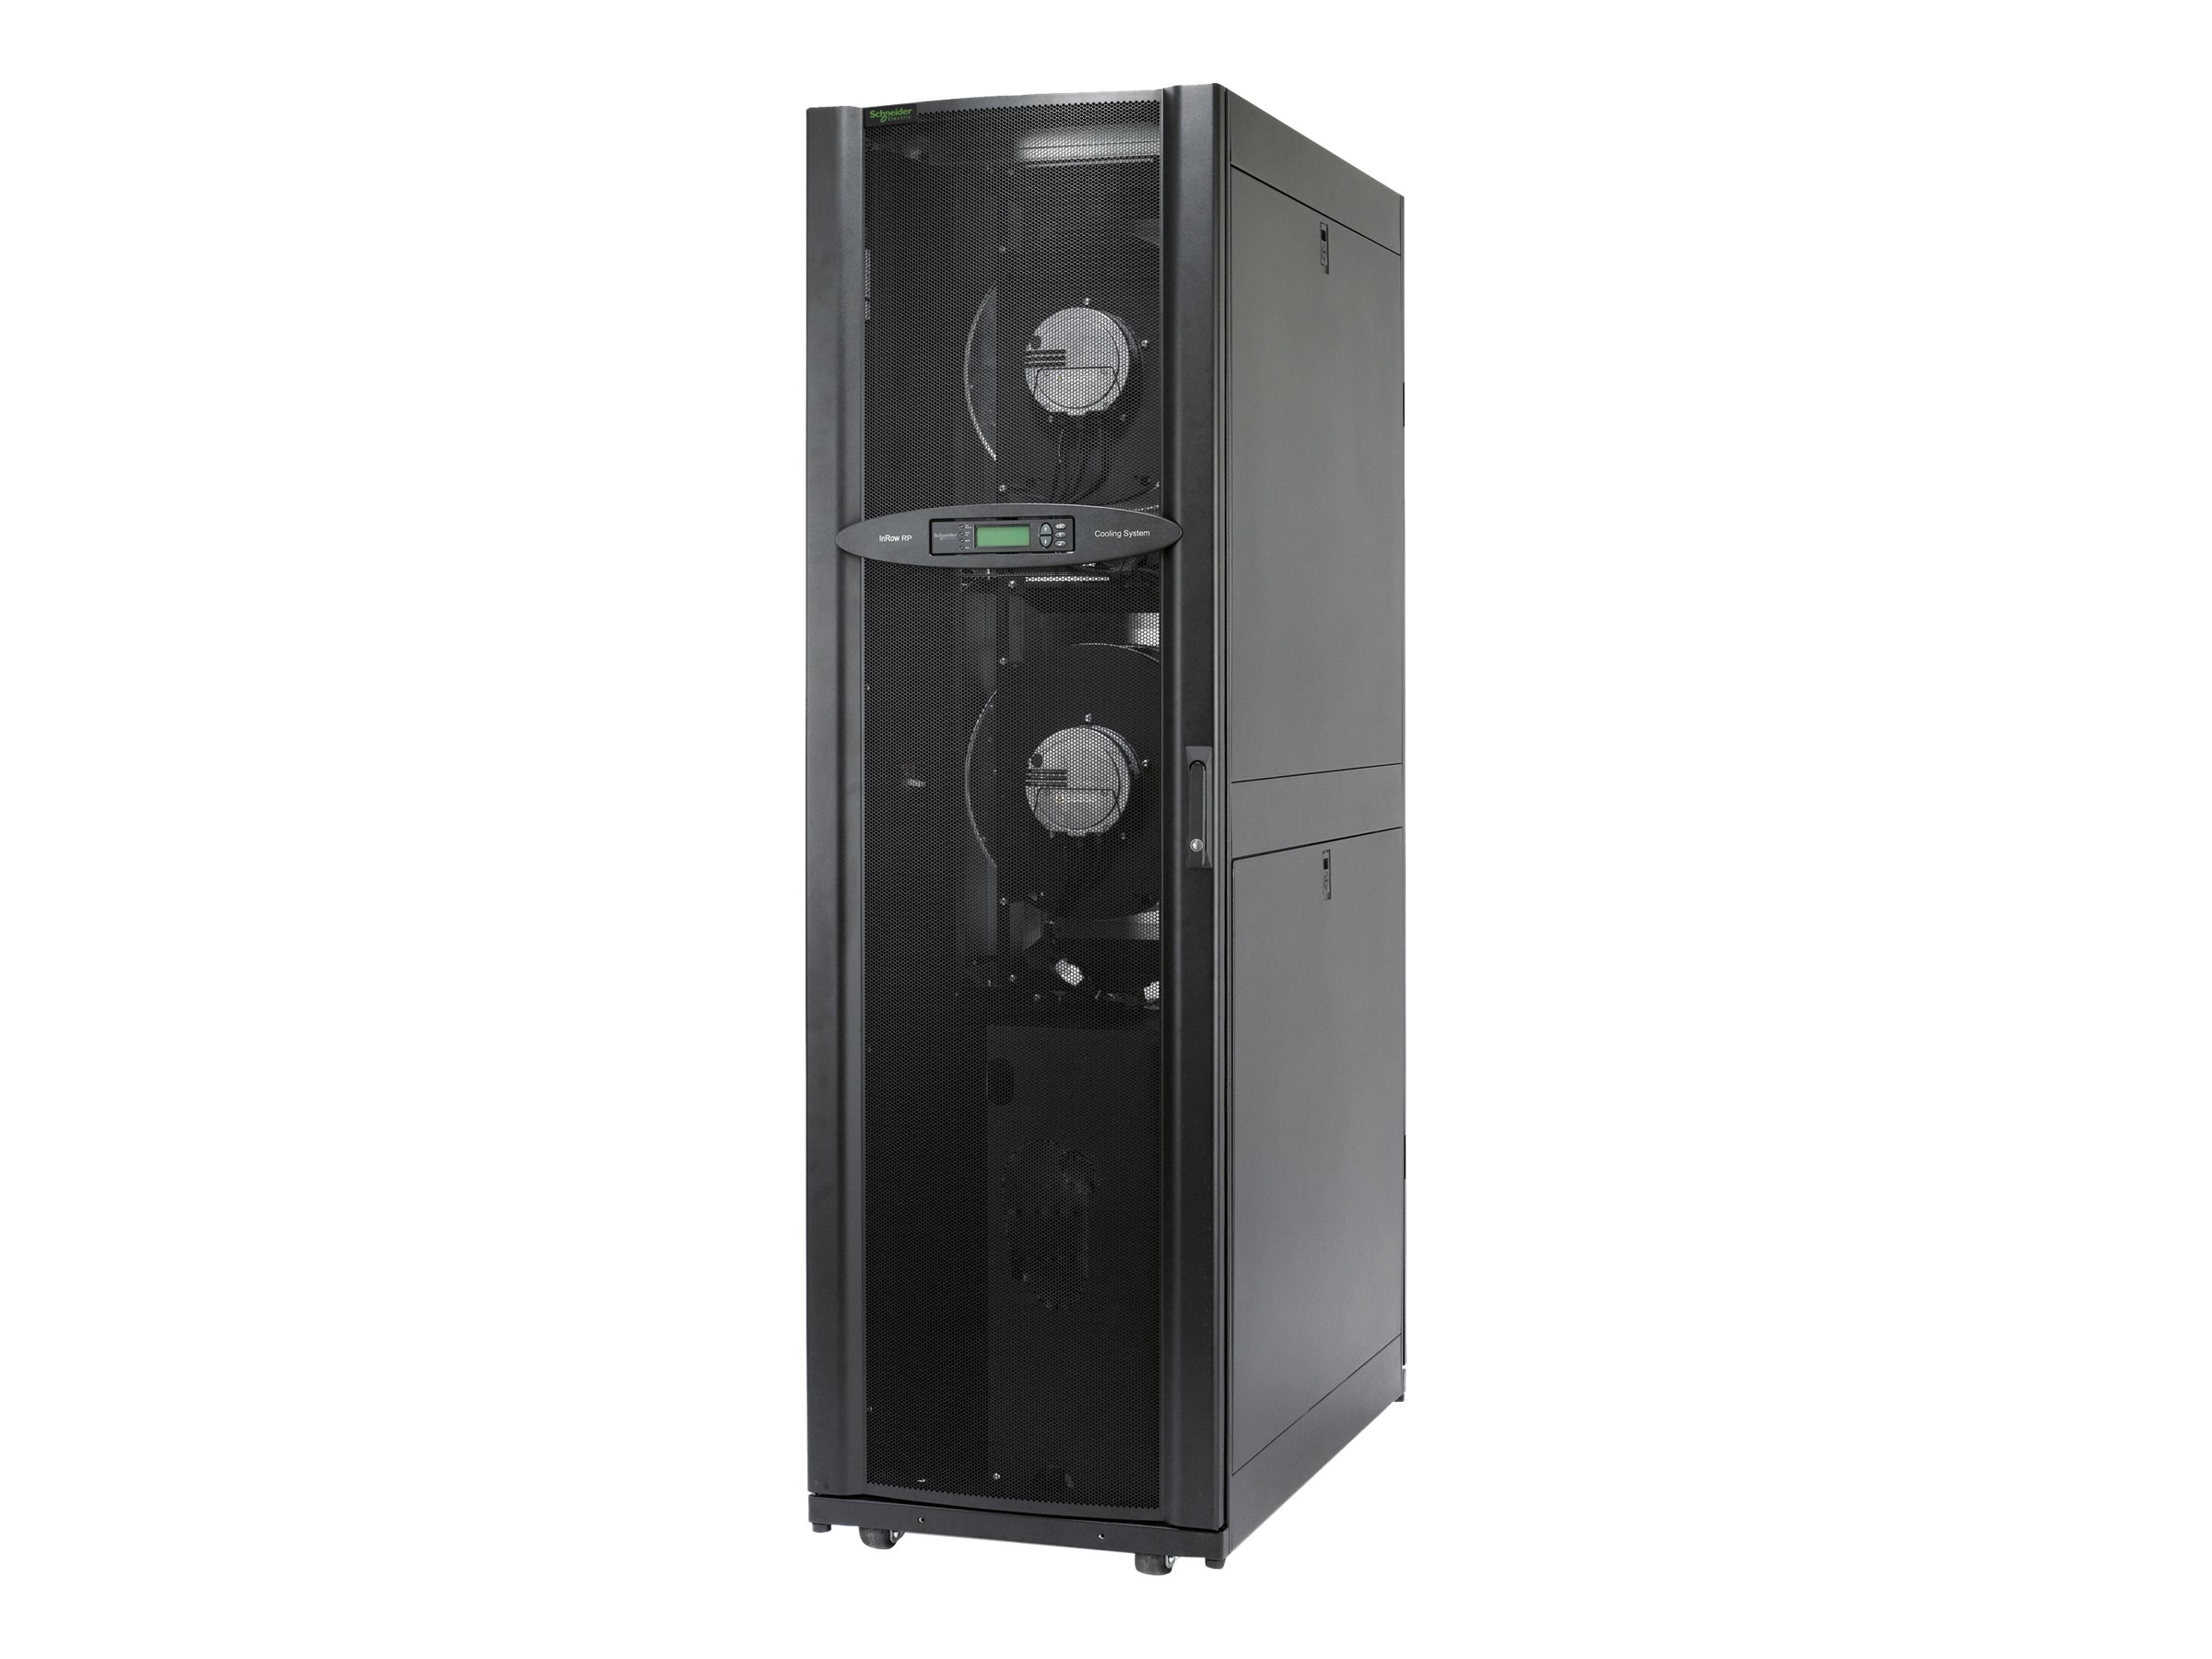 APC InRow RP DX Air-Cooled, 460-480V, ACRP101, 7391083, Cooling Systems/Fans